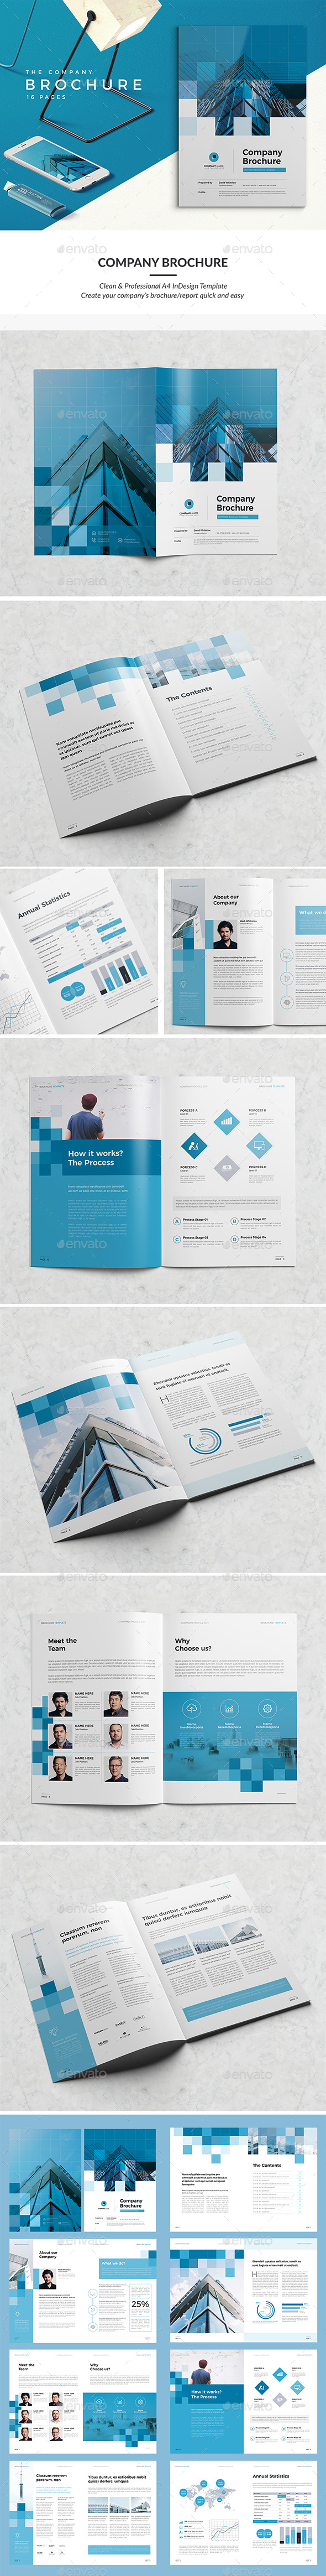 Modern Company Brochure 16 Pages - Corporate Brochures